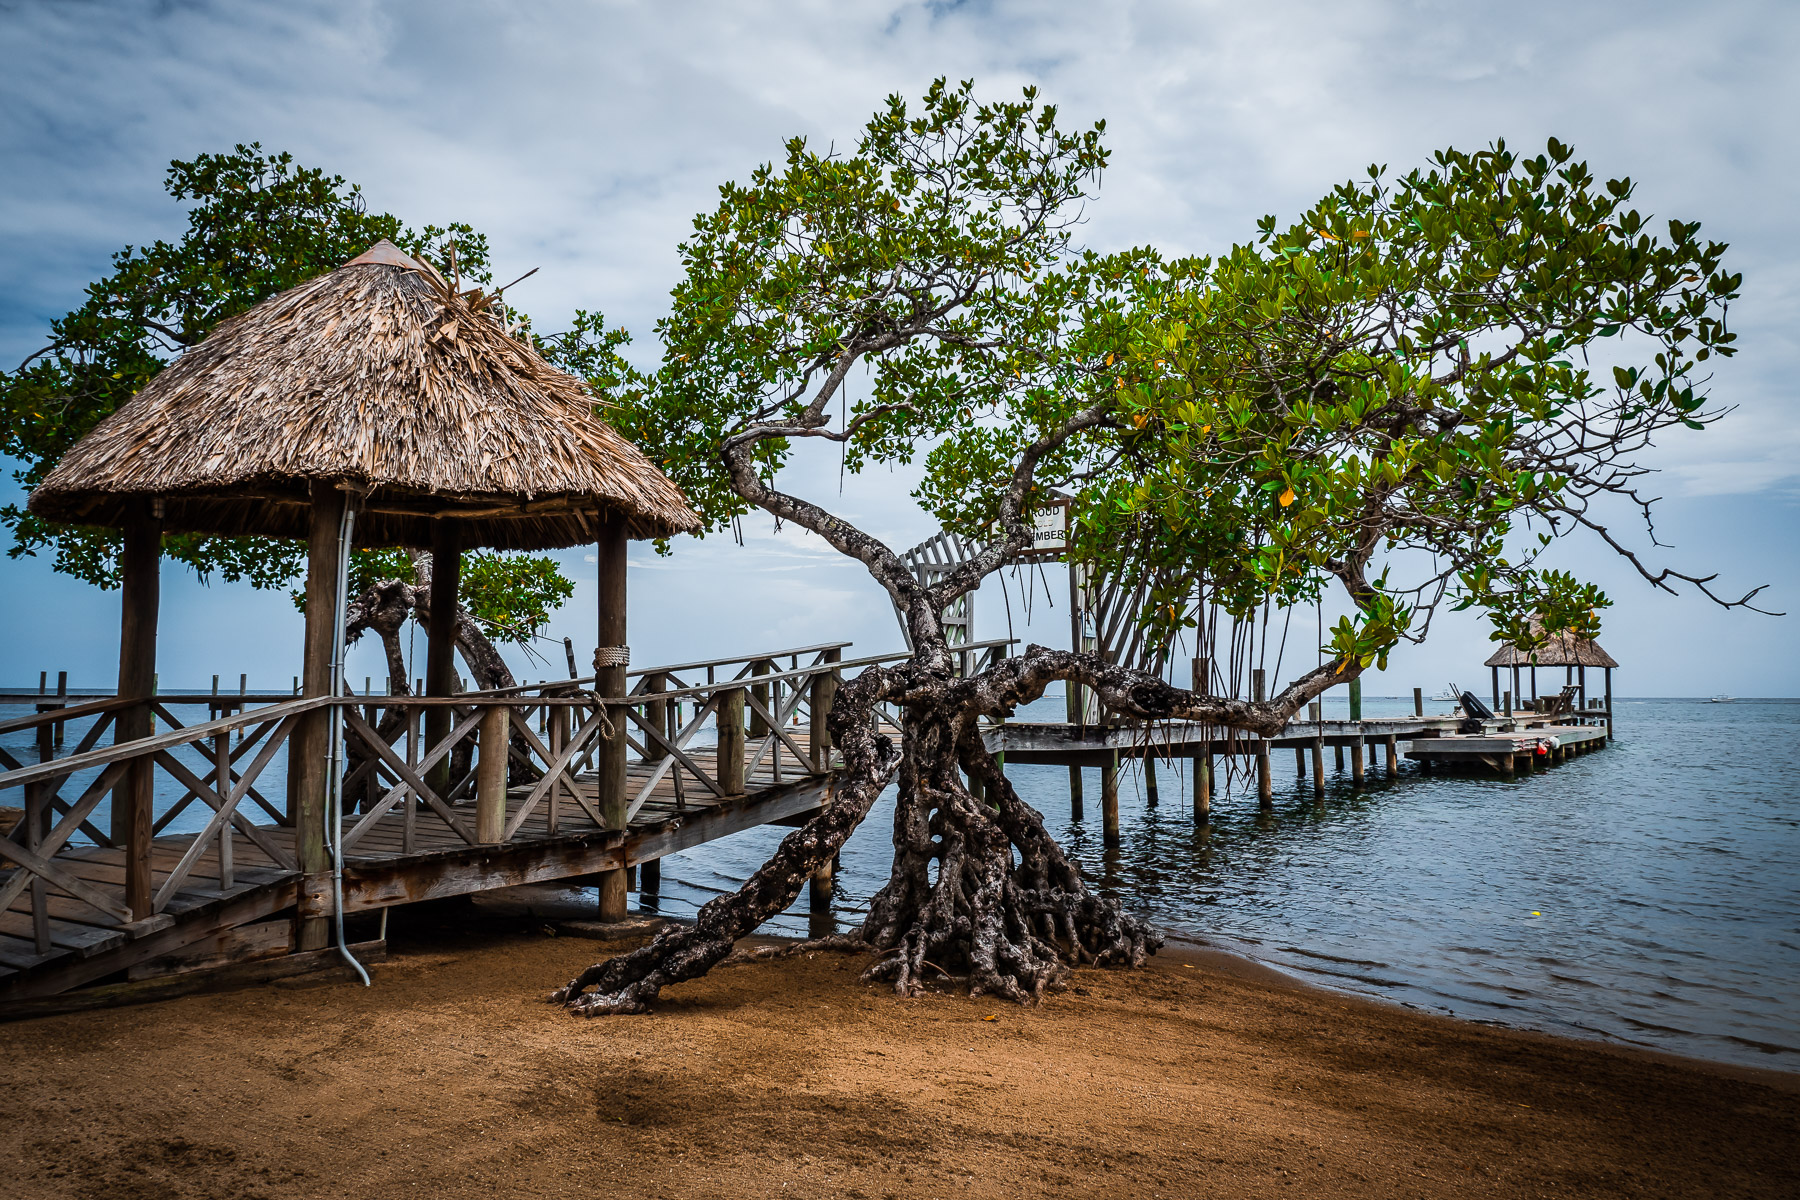 Mangrove trees grow alongside a pier on a Roatan, Honduras, beach.